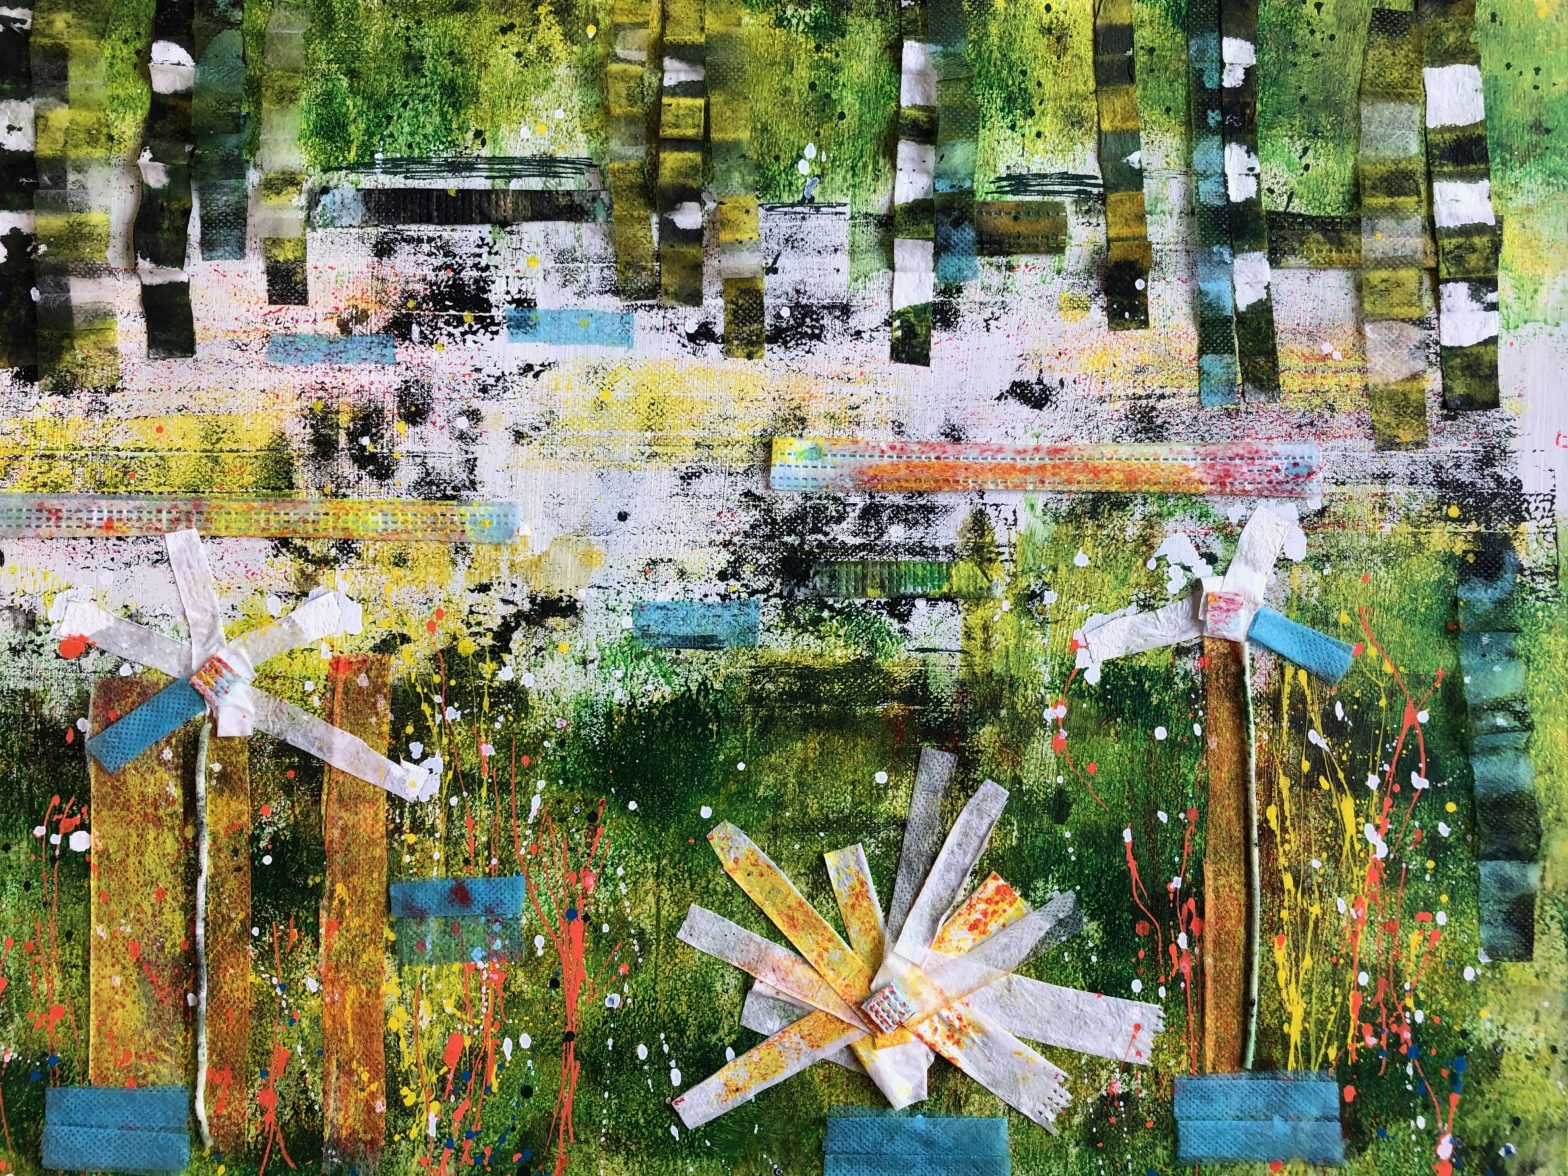 Abstract landscape collage made using disposable face masks